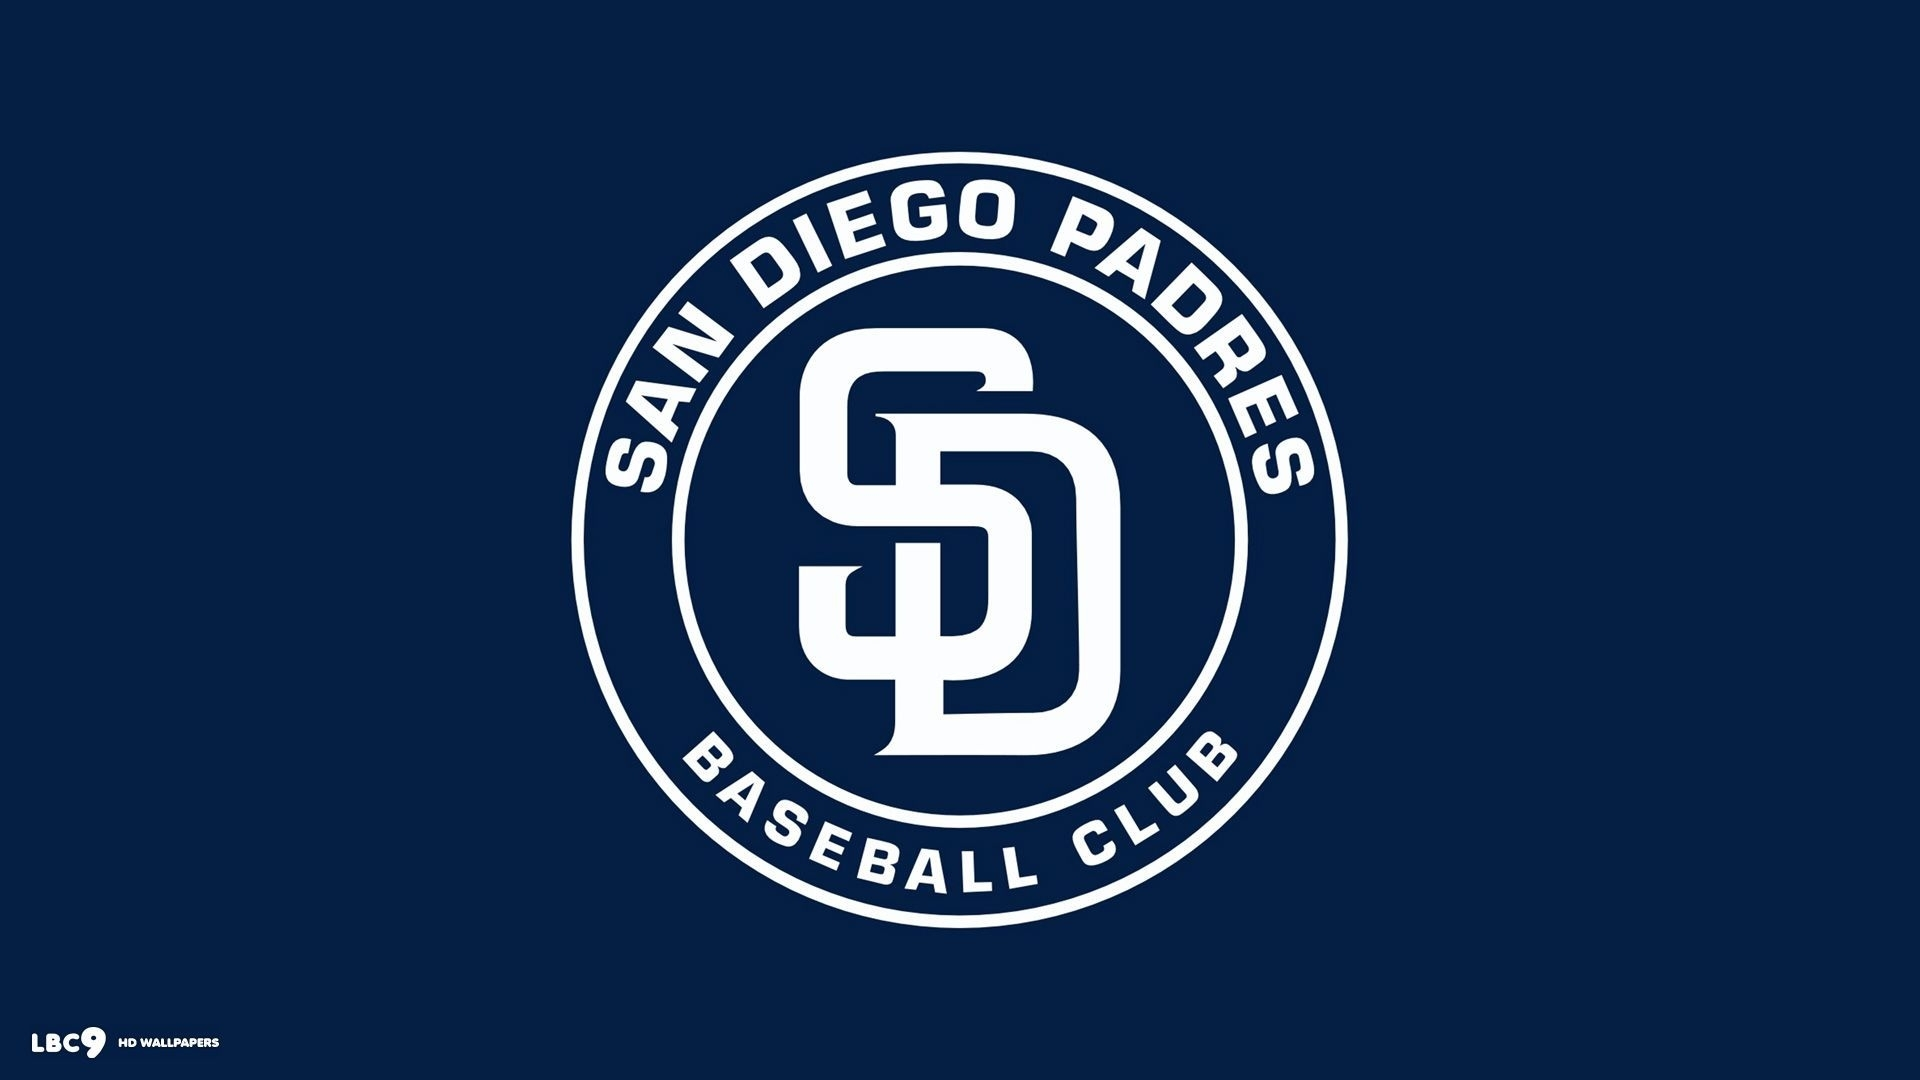 san diego padres wallpapers - wallpaper cave